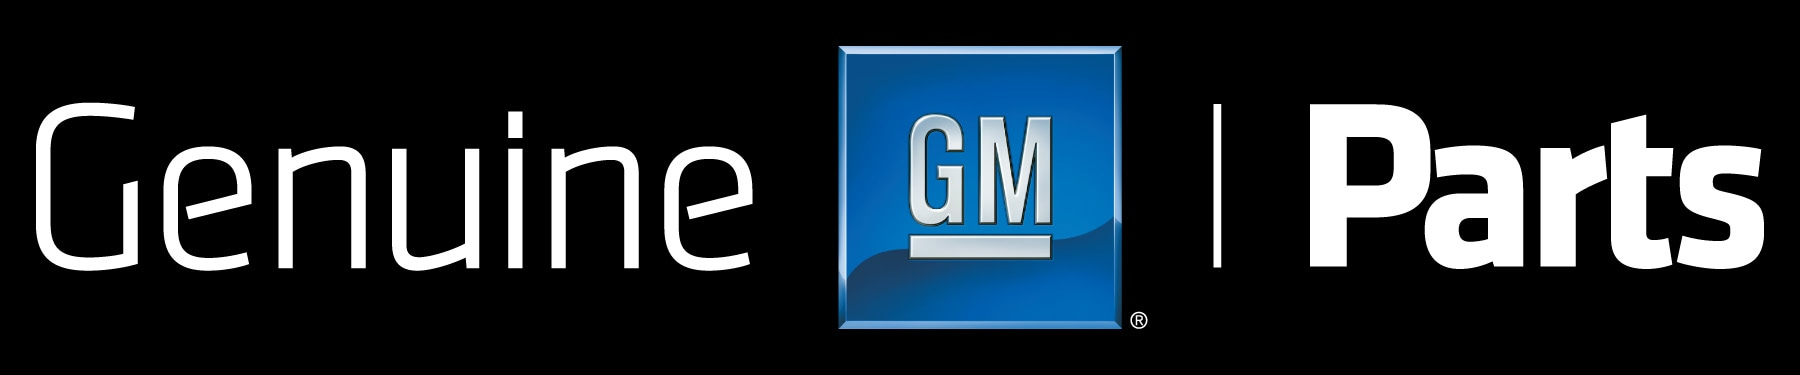 gm parts for sale